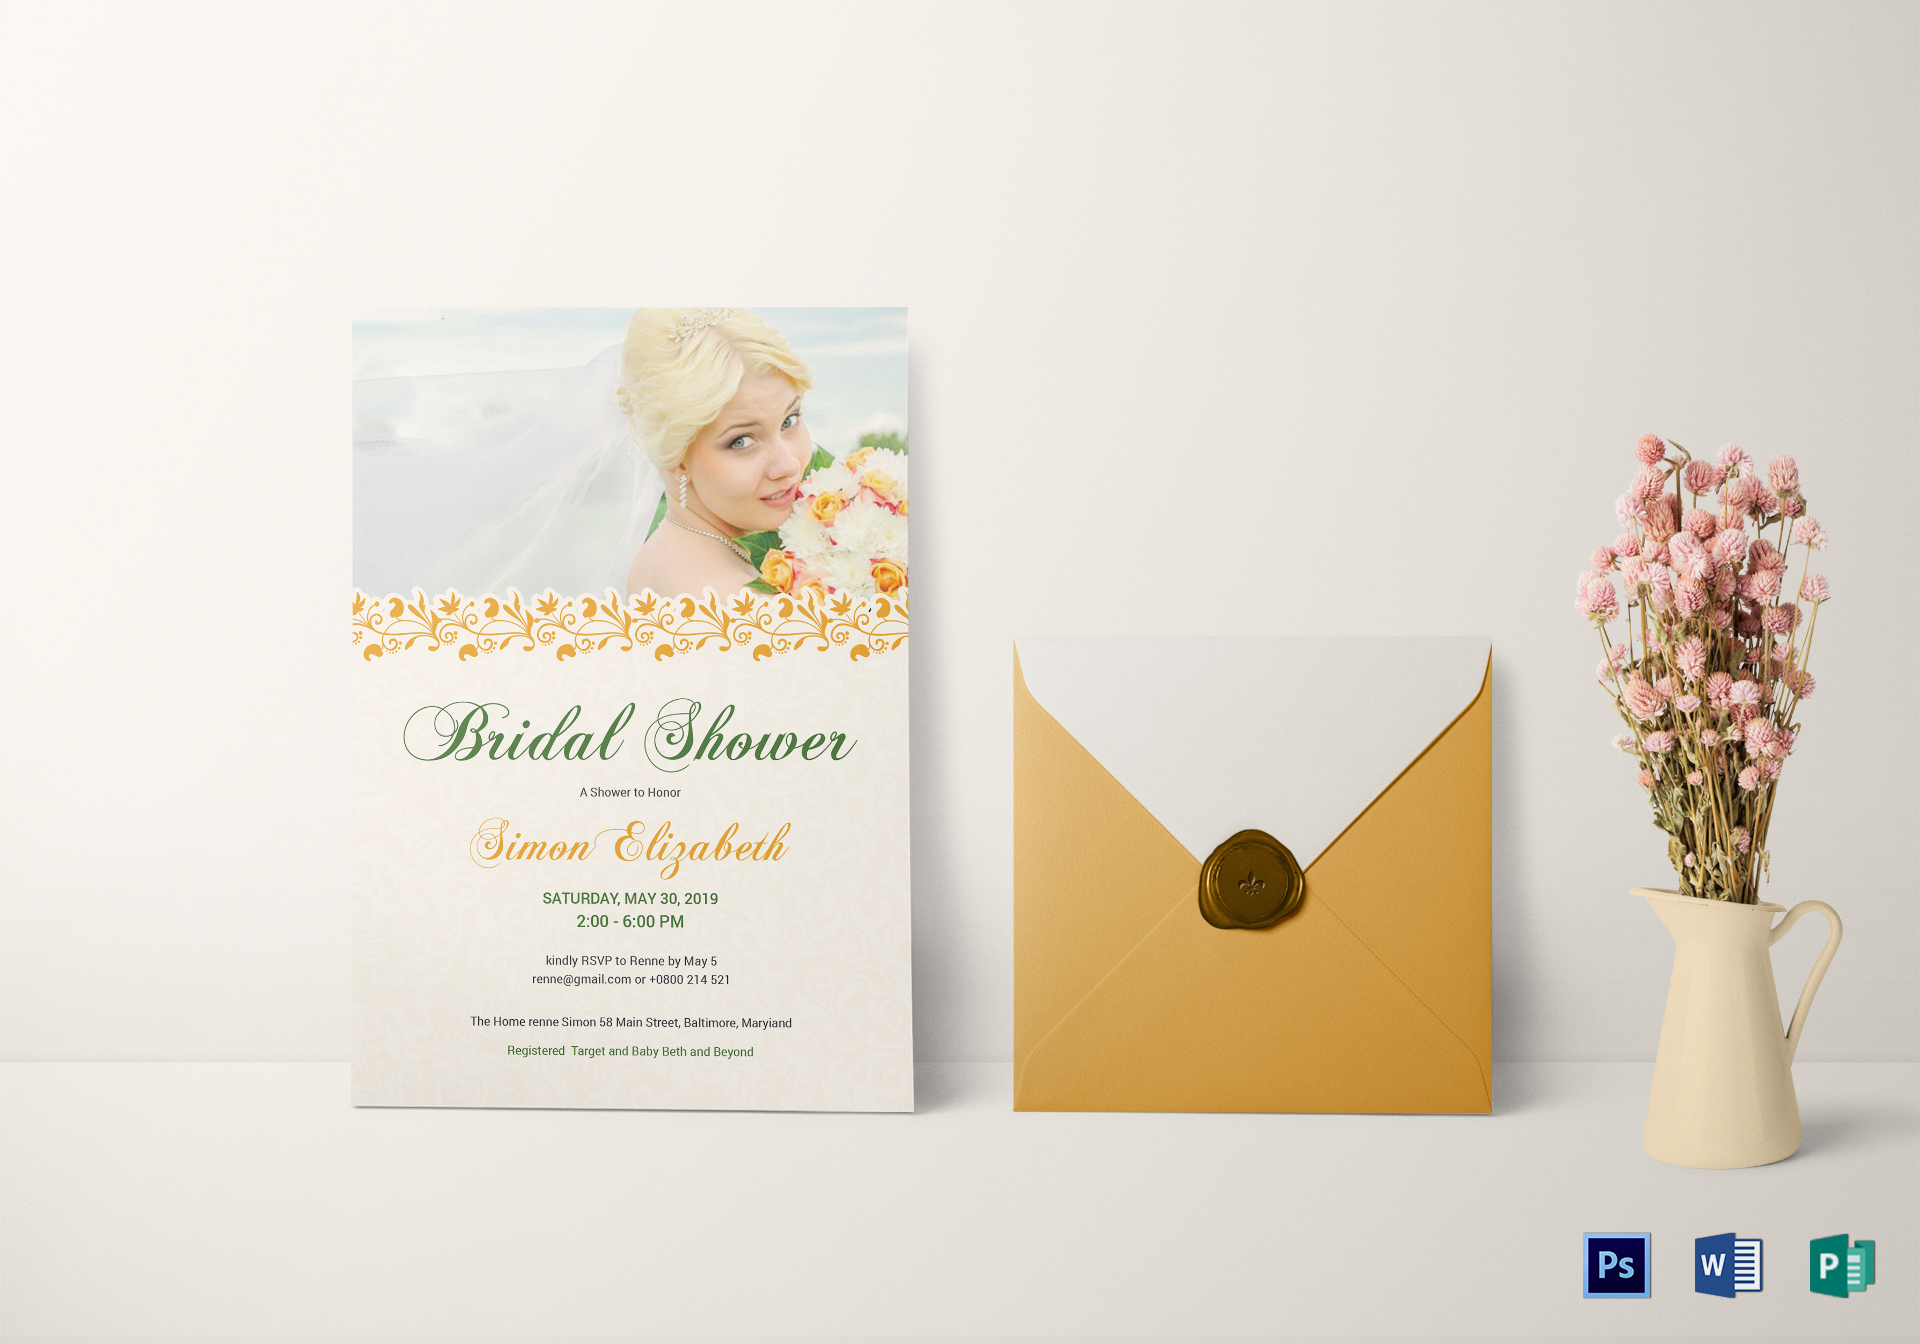 Classic Bridal Shower Invitation Card Template